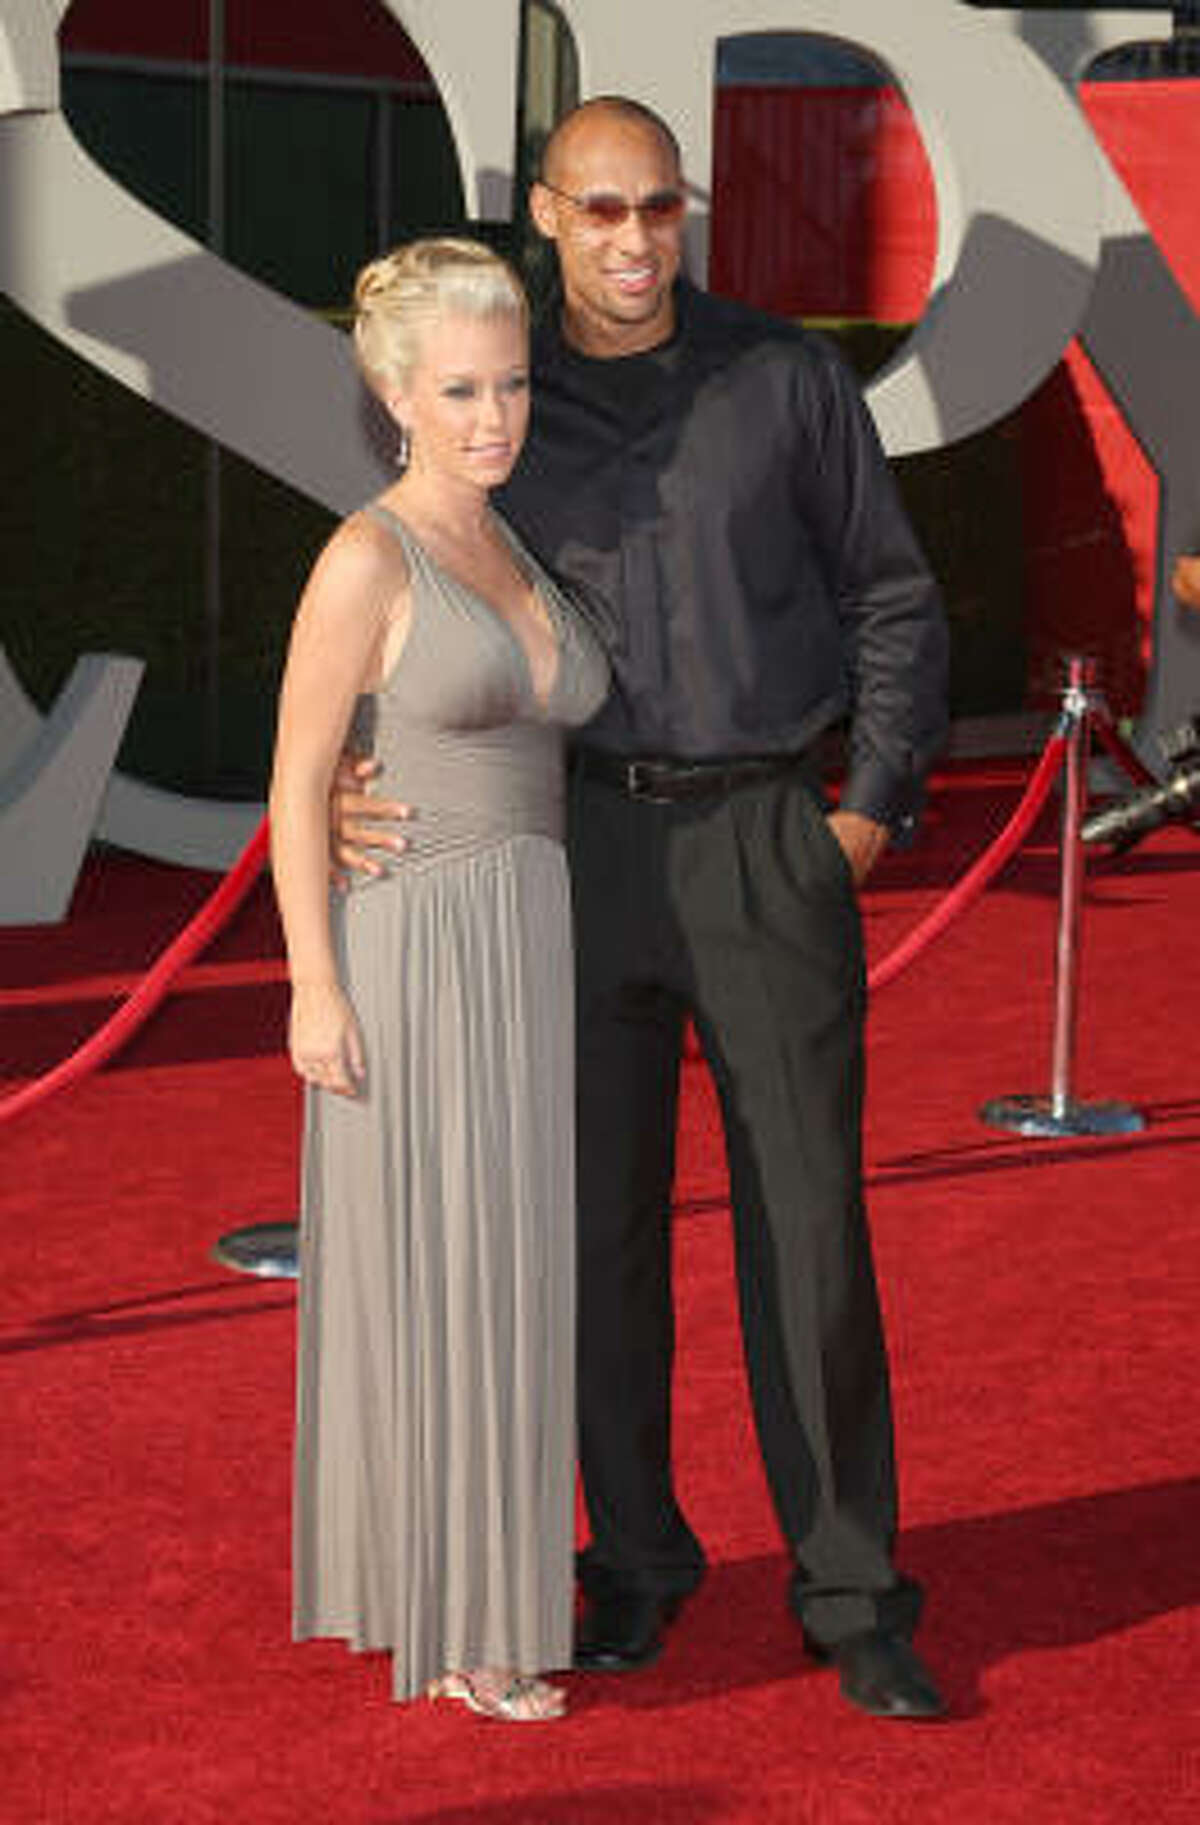 Kendra Wilkinson and Hank Baskett , Kendra Fail: A sex tape released featuring Wilkinson and her high school boyfriend. Win: It could have been worse. It could have starred her ex-boyfriend Hugh Hefner.